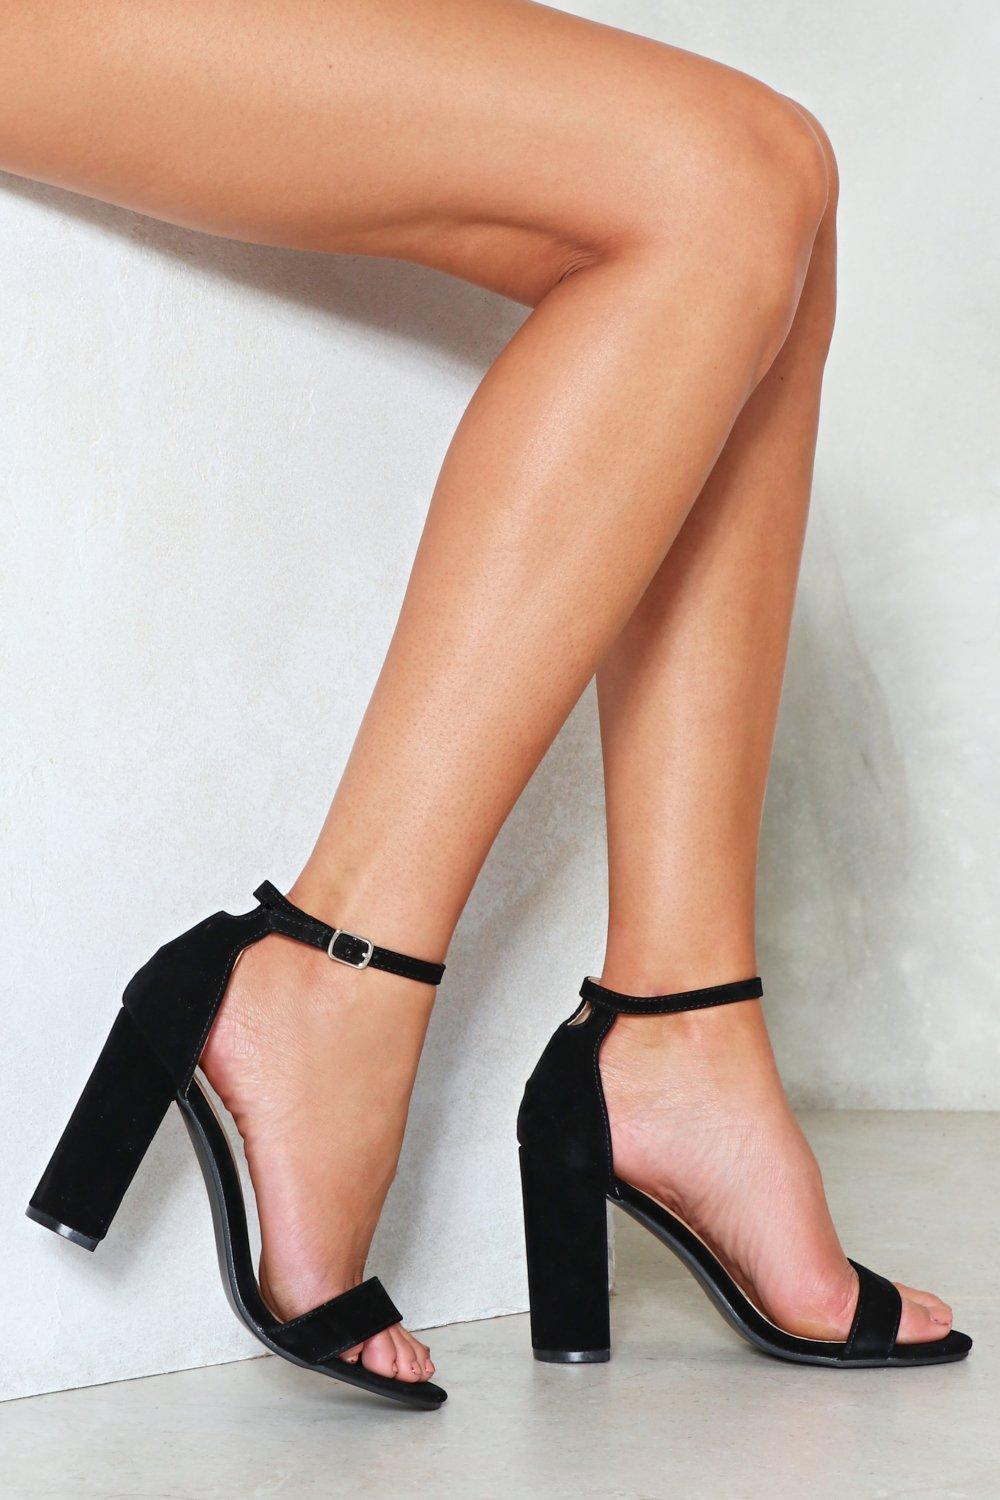 550b90b4100d Over and Out Faux Suede Heel | Shop Clothes at Nasty Gal!